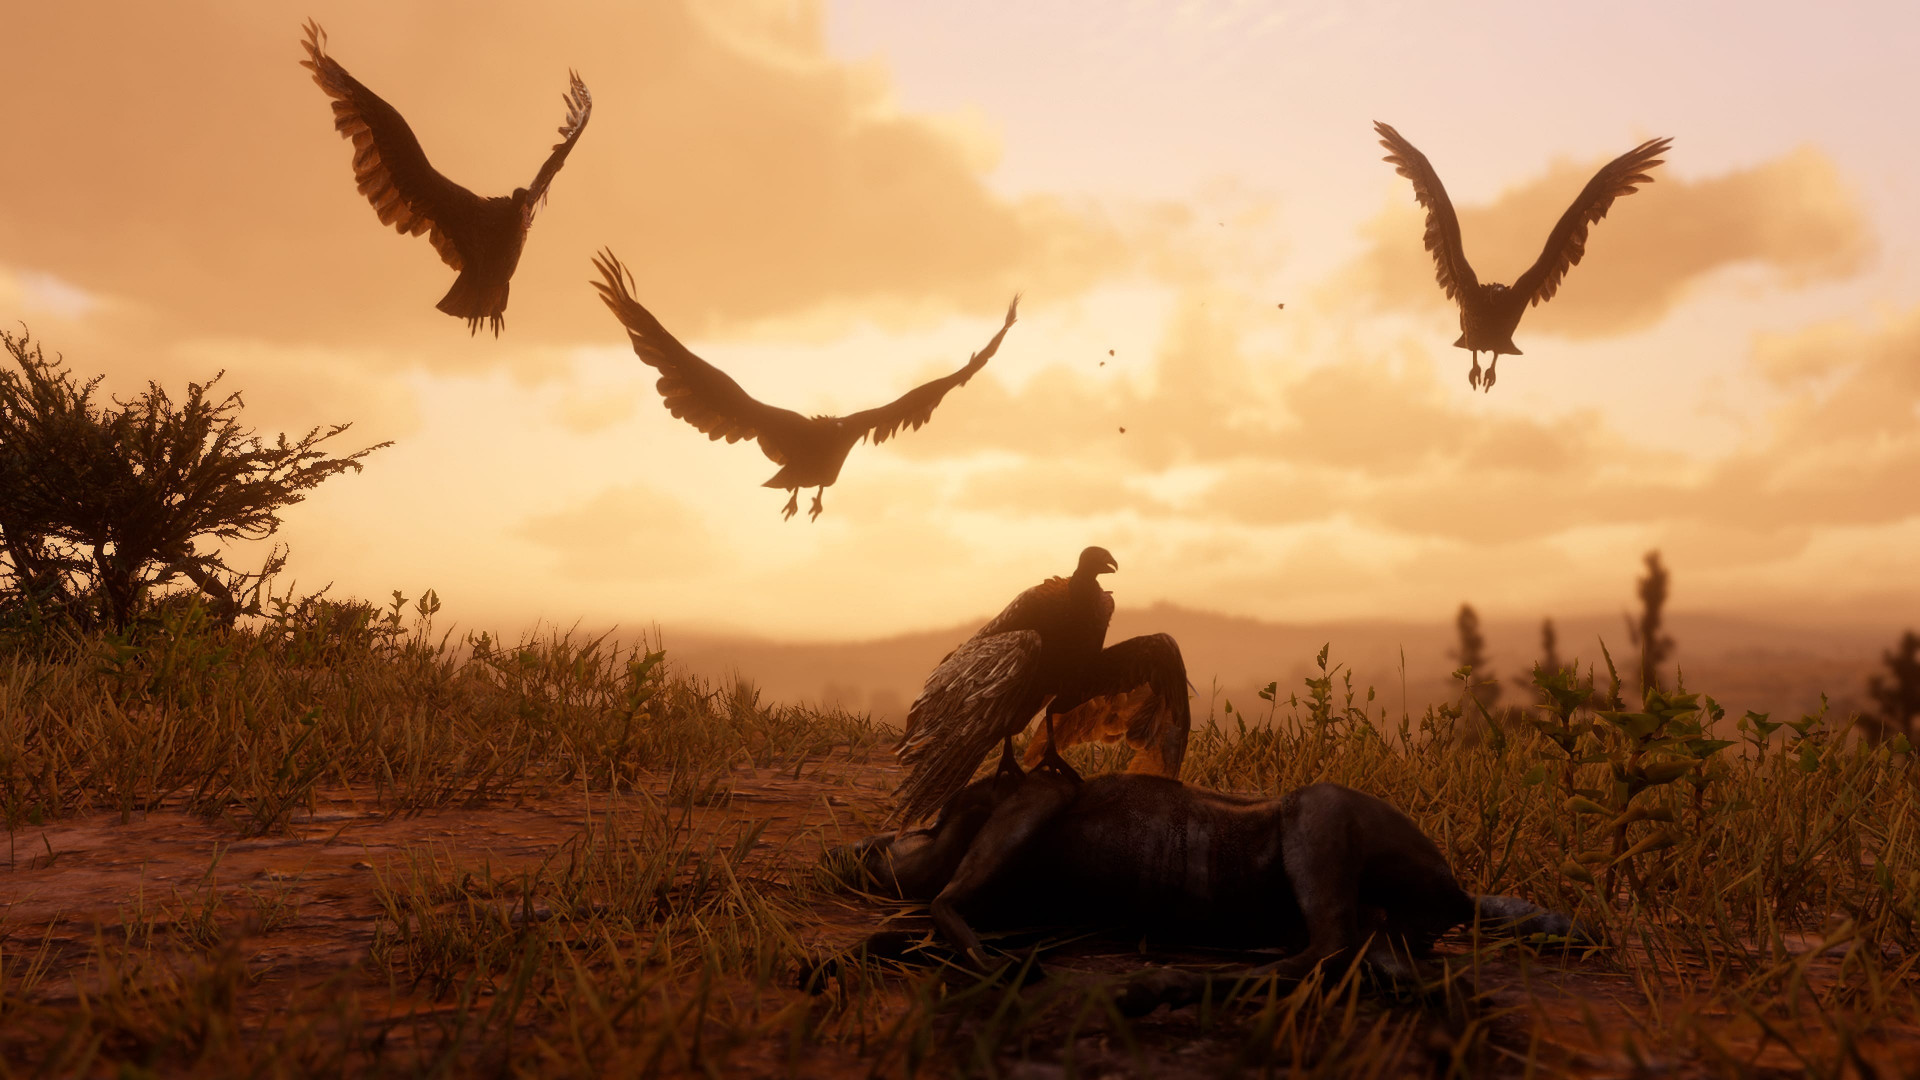 Download Wallpaper Red Dead Redemption 2 1920x1080